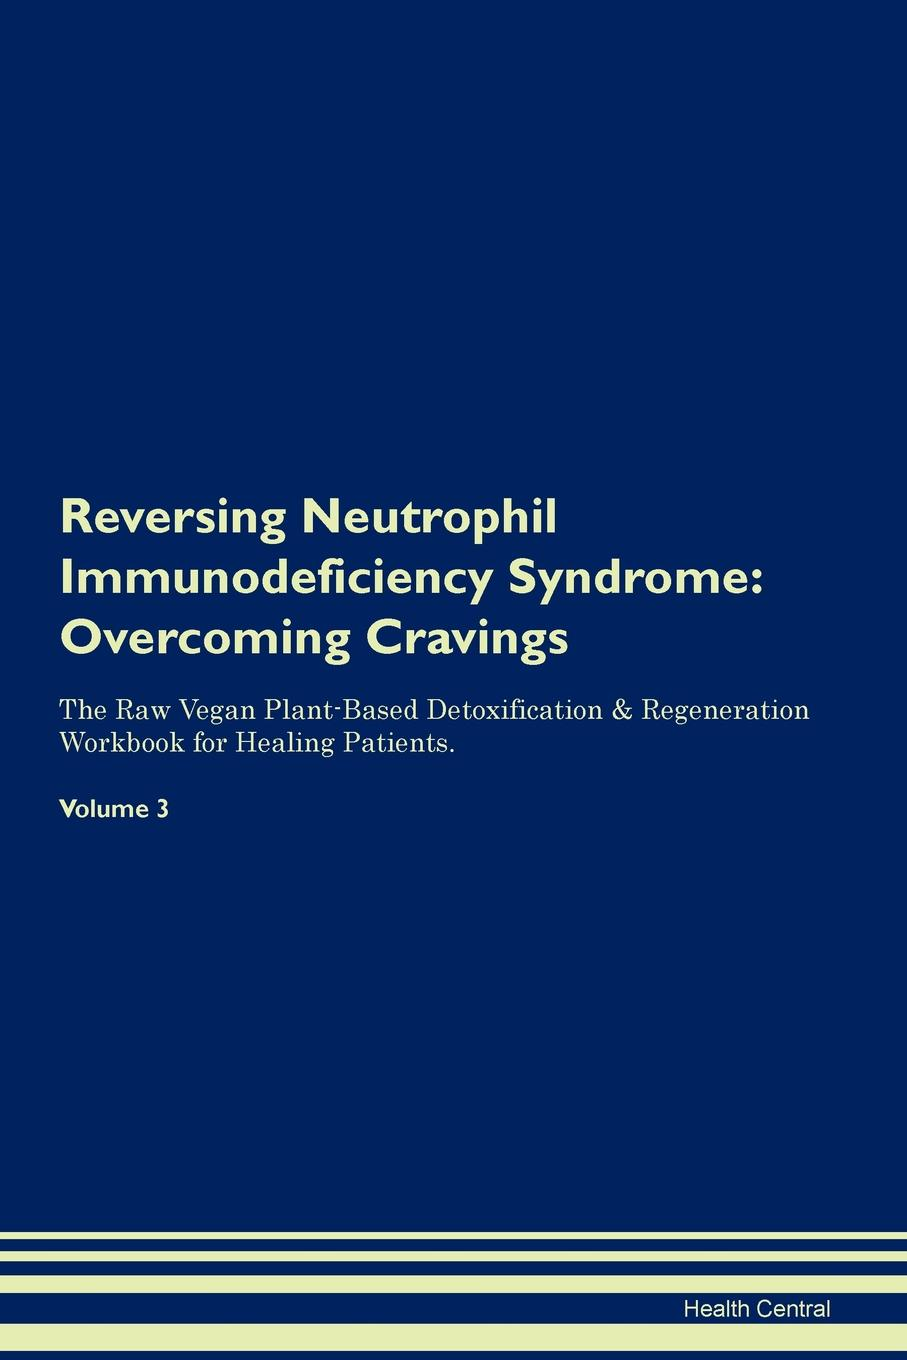 Health Central Reversing Neutrophil Immunodeficiency Syndrome. Overcoming Cravings The Raw Vegan Plant-Based Detoxification . Regeneration Workbook for Healing Patients.Volume 3 prevalance of metabolic syndrome in baghdad